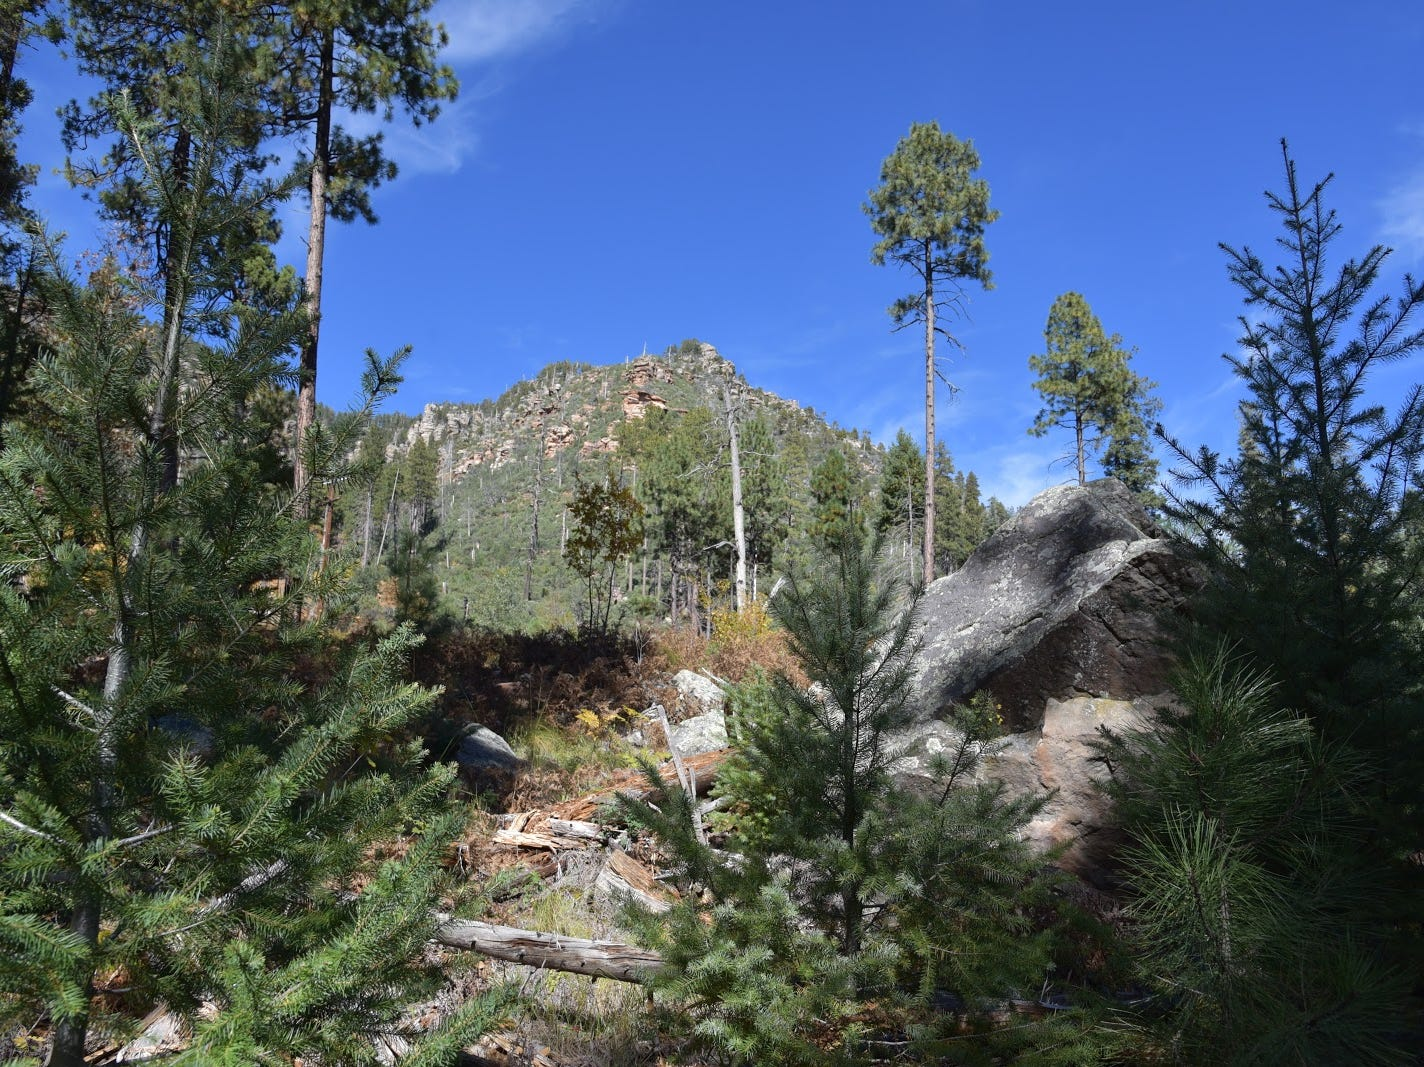 The Col. Devin Trail climbs more than 1,000 feet to the top of the Mogollon Rim.